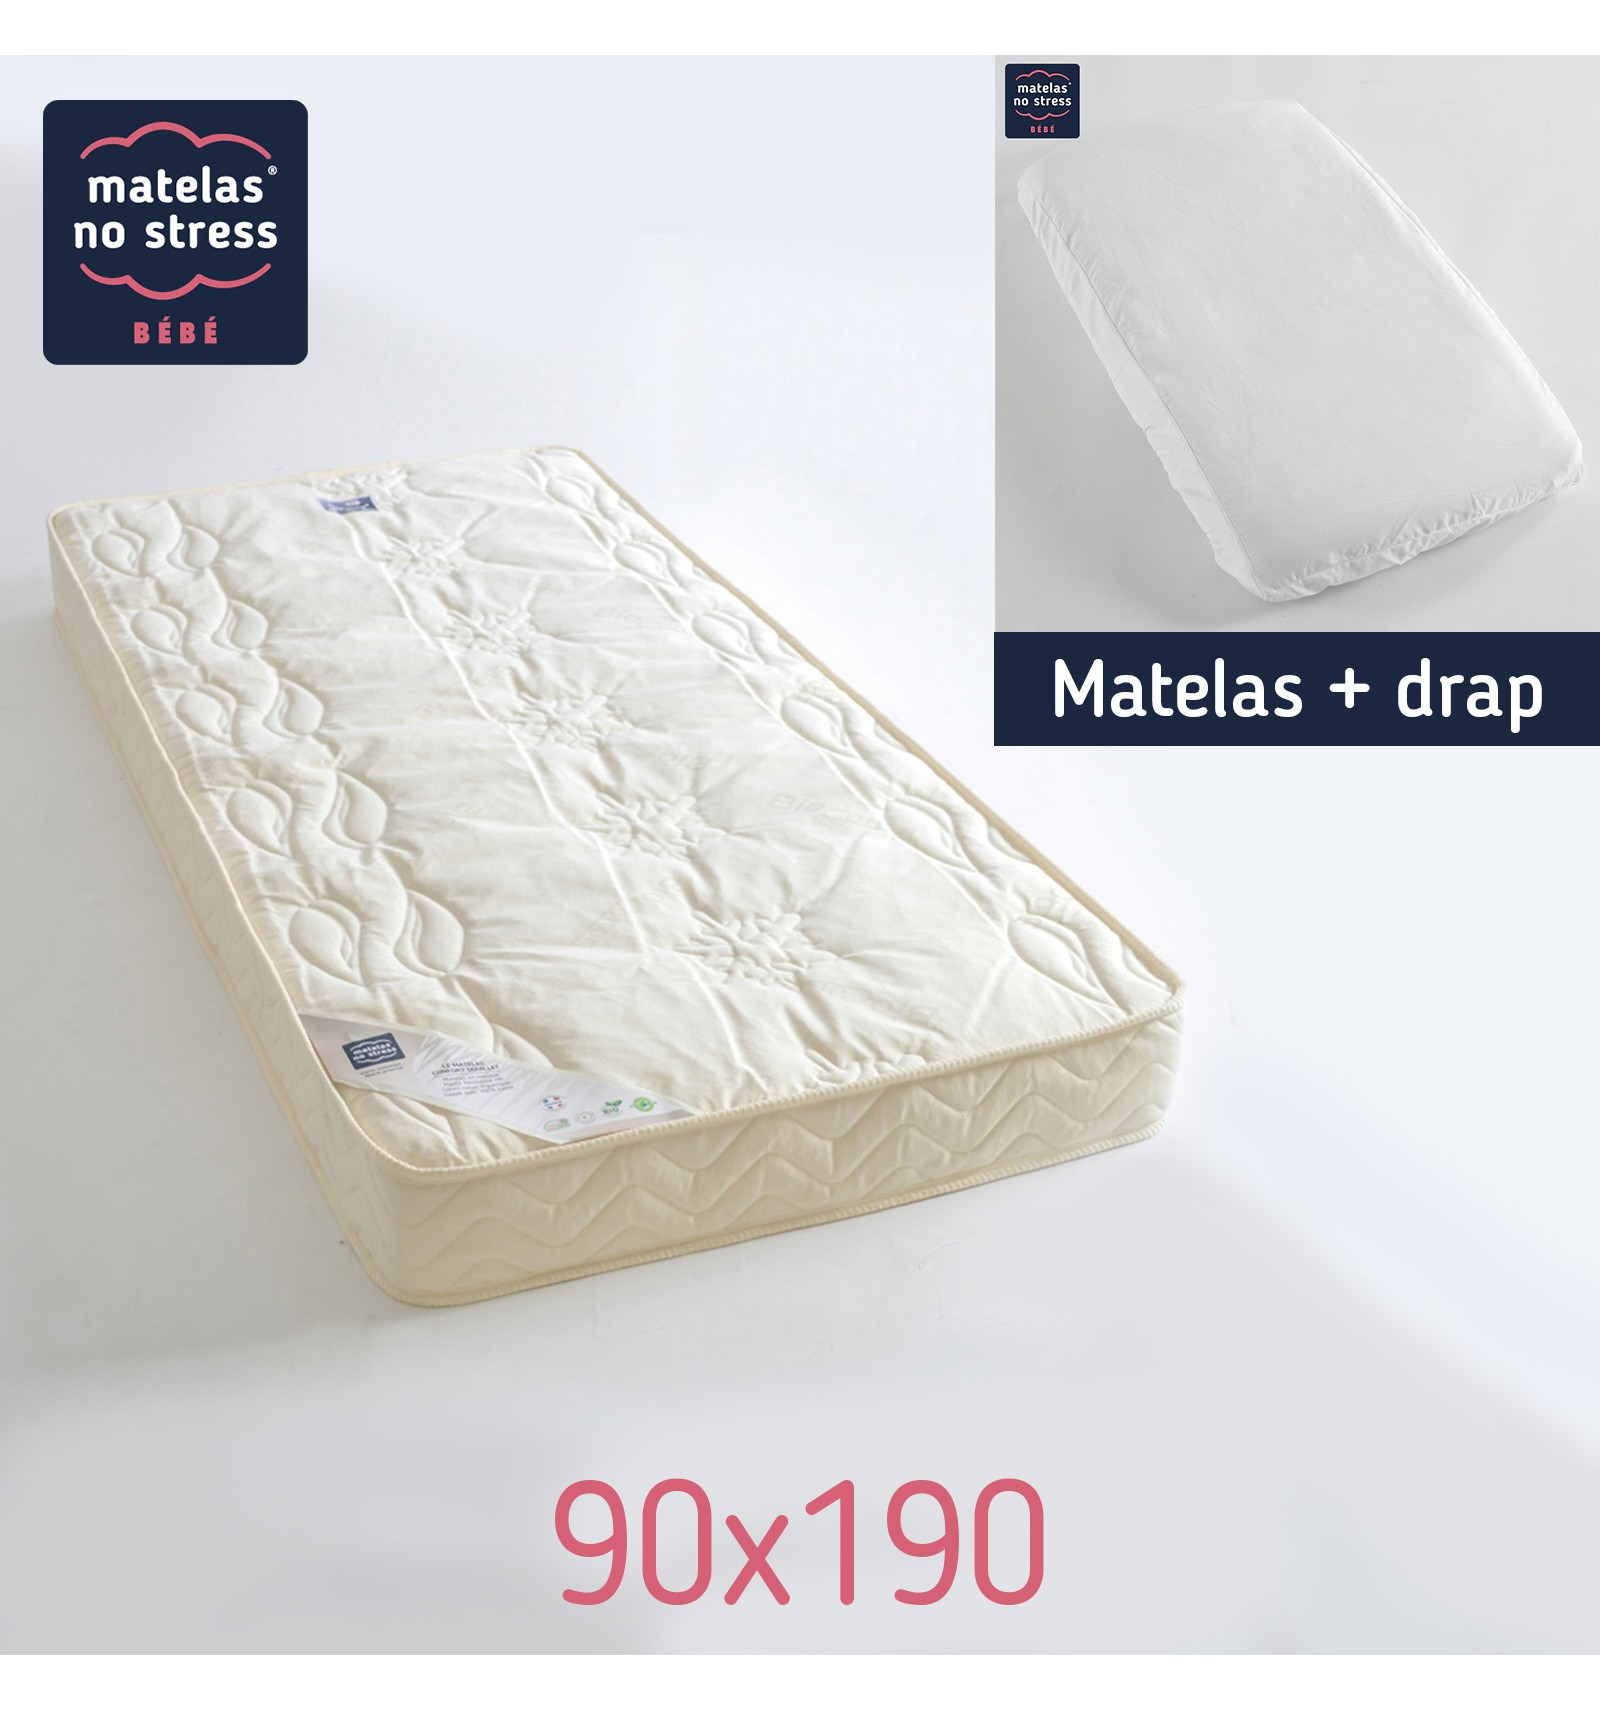 le matelas 90x190 avec son drap couffin matelas. Black Bedroom Furniture Sets. Home Design Ideas